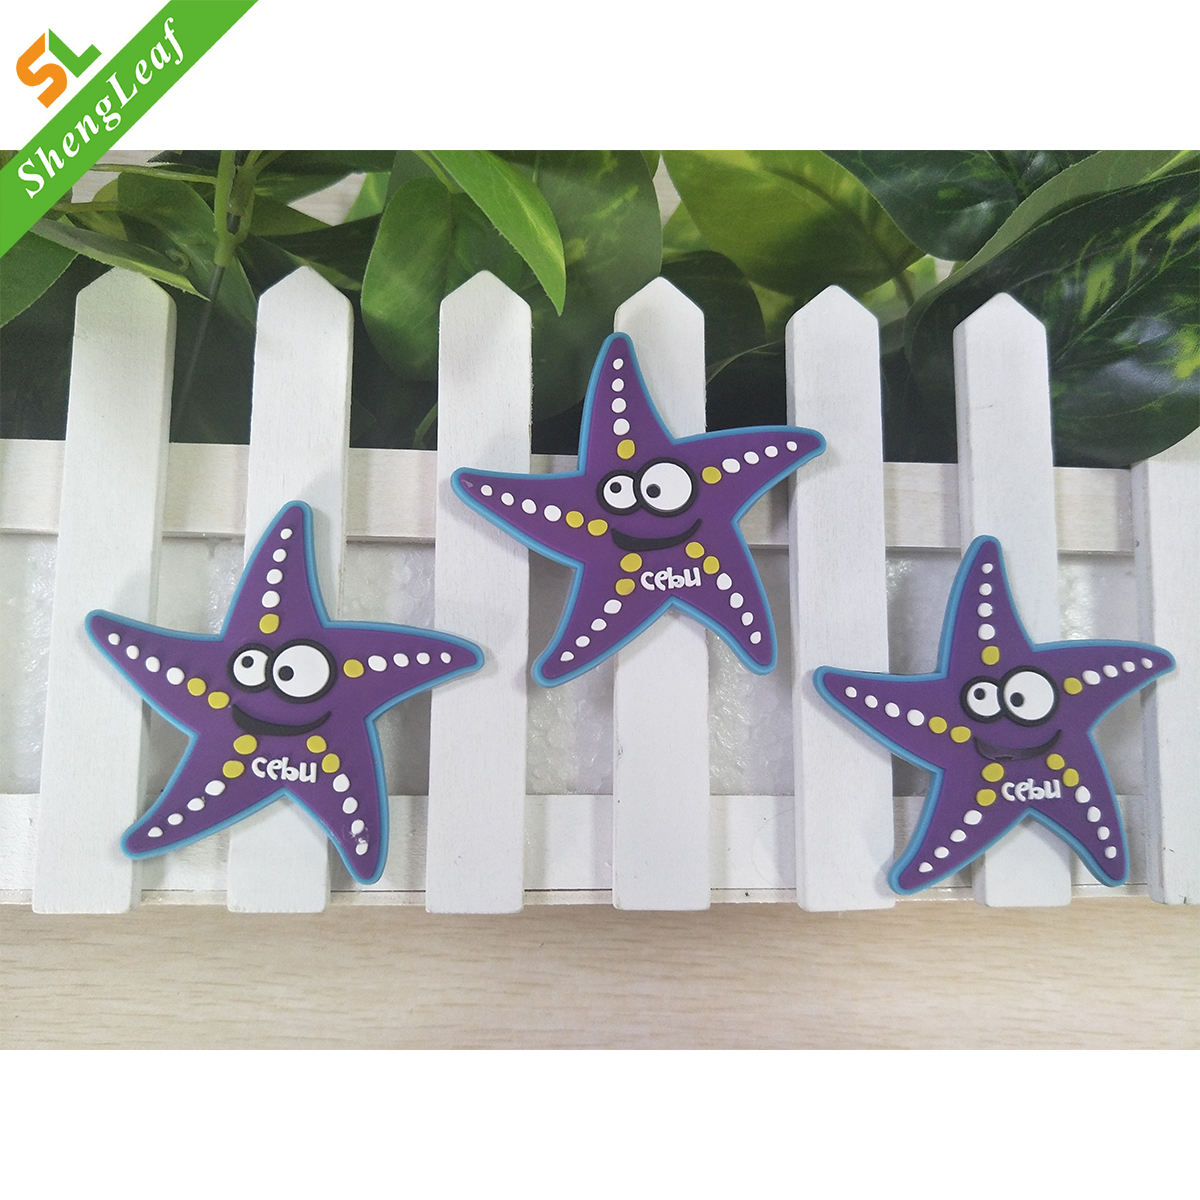 newa arrival free sample 13 years factory wholesale 3D star Soft PVC rubber three-dimensional fridge magnets